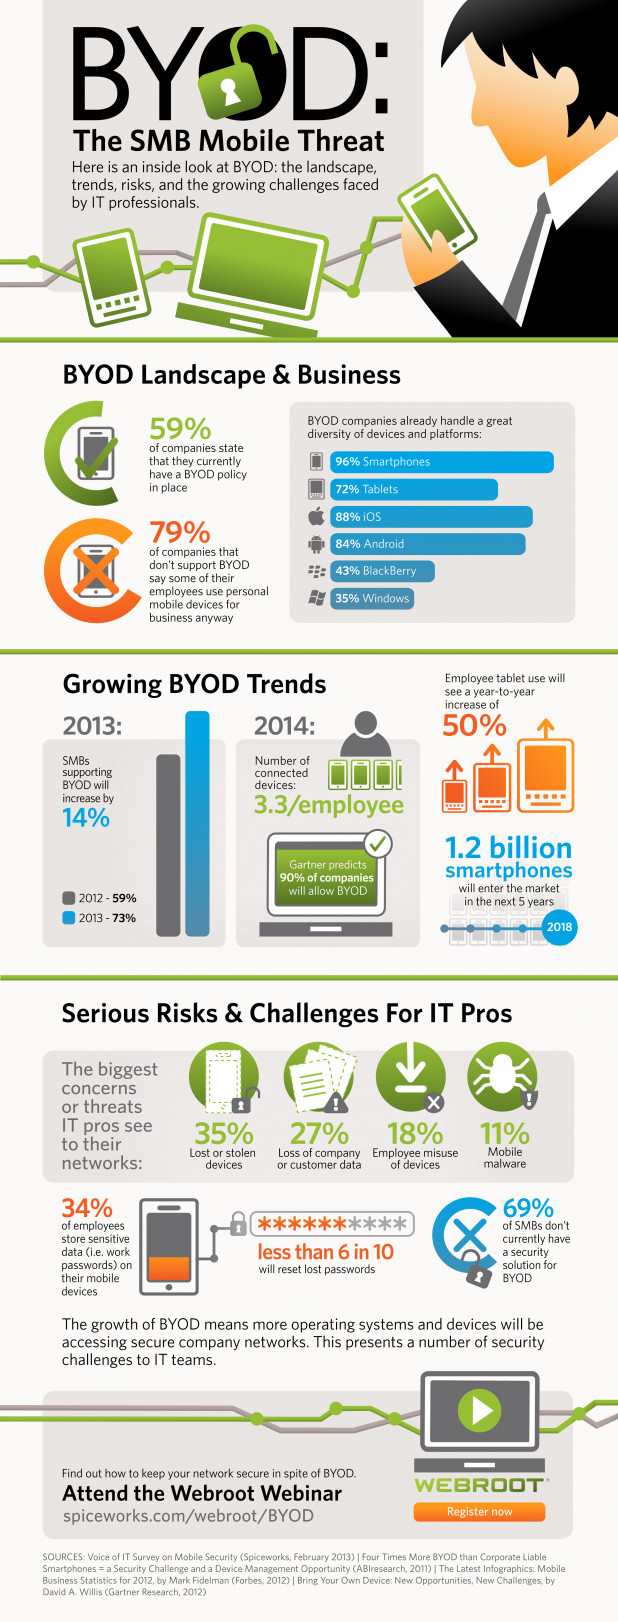 BYOD: The SMB Mobile Threat